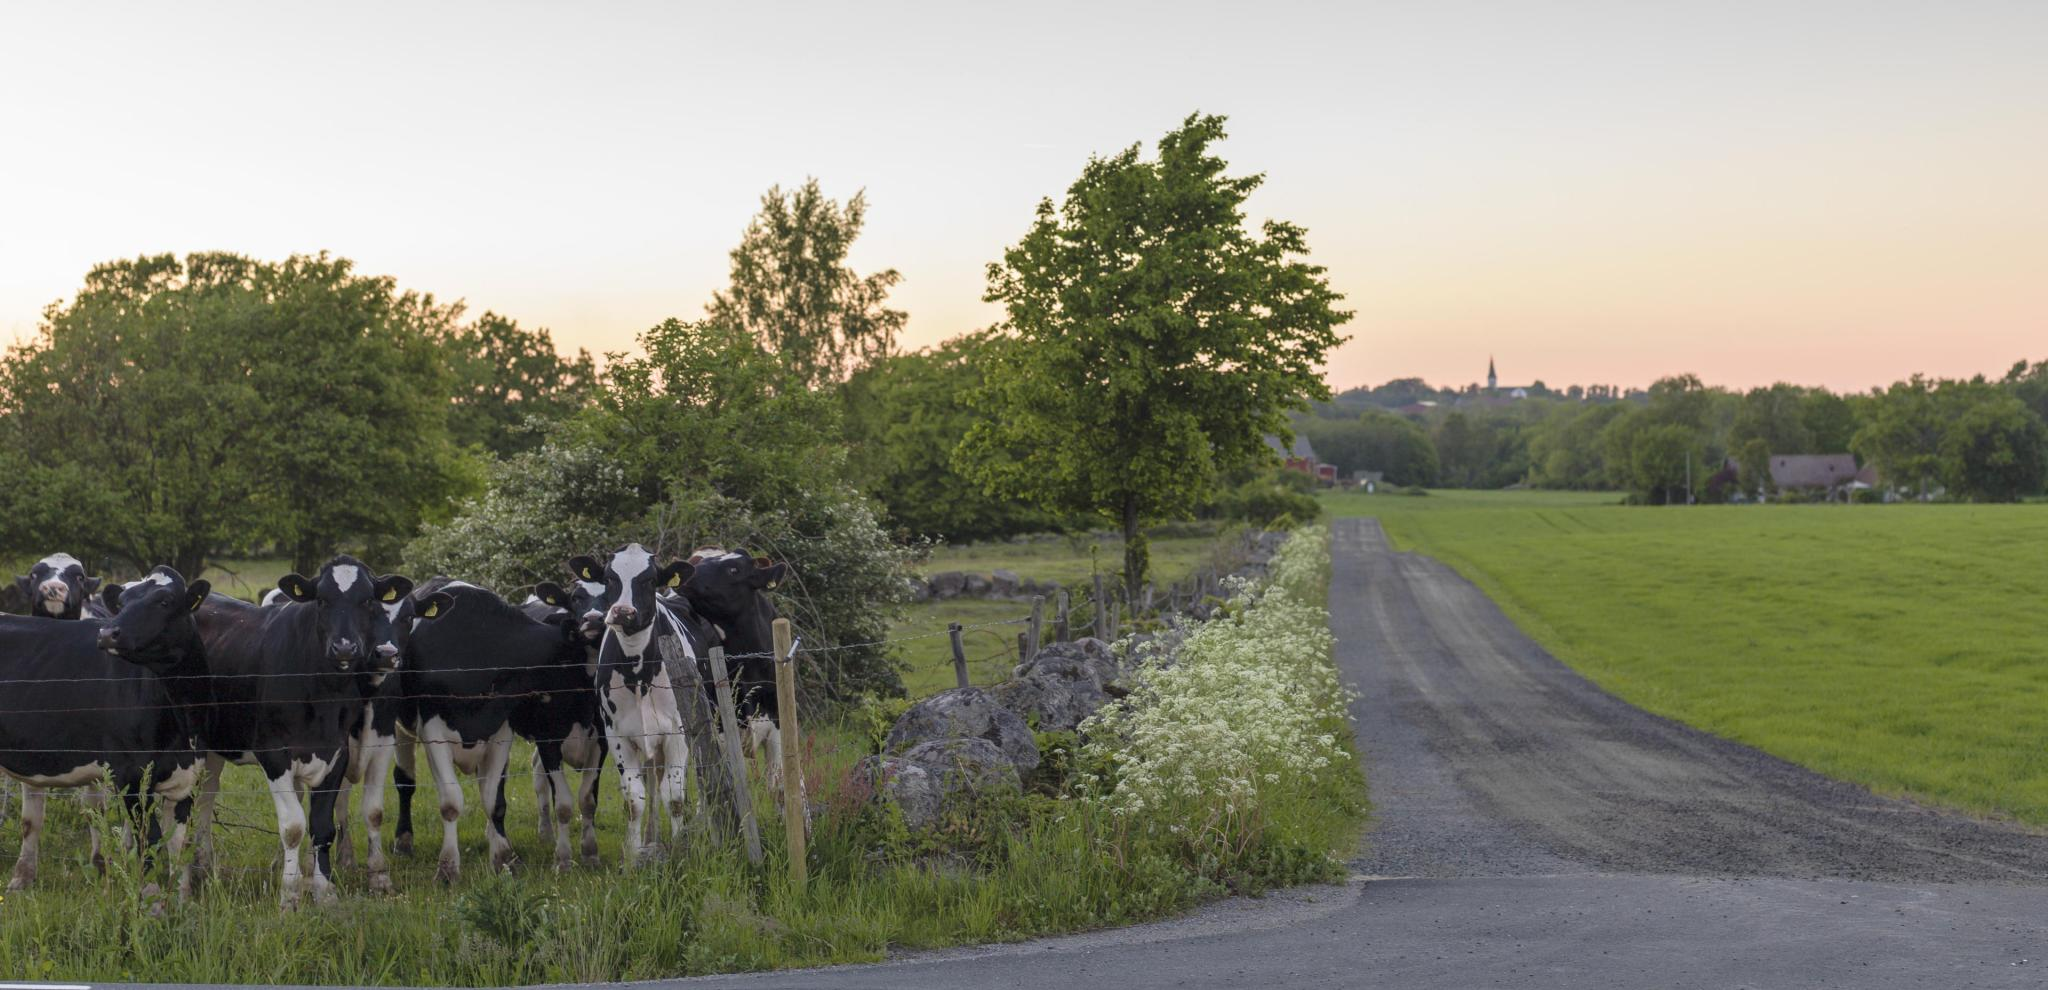 Cows by a road in Österlen